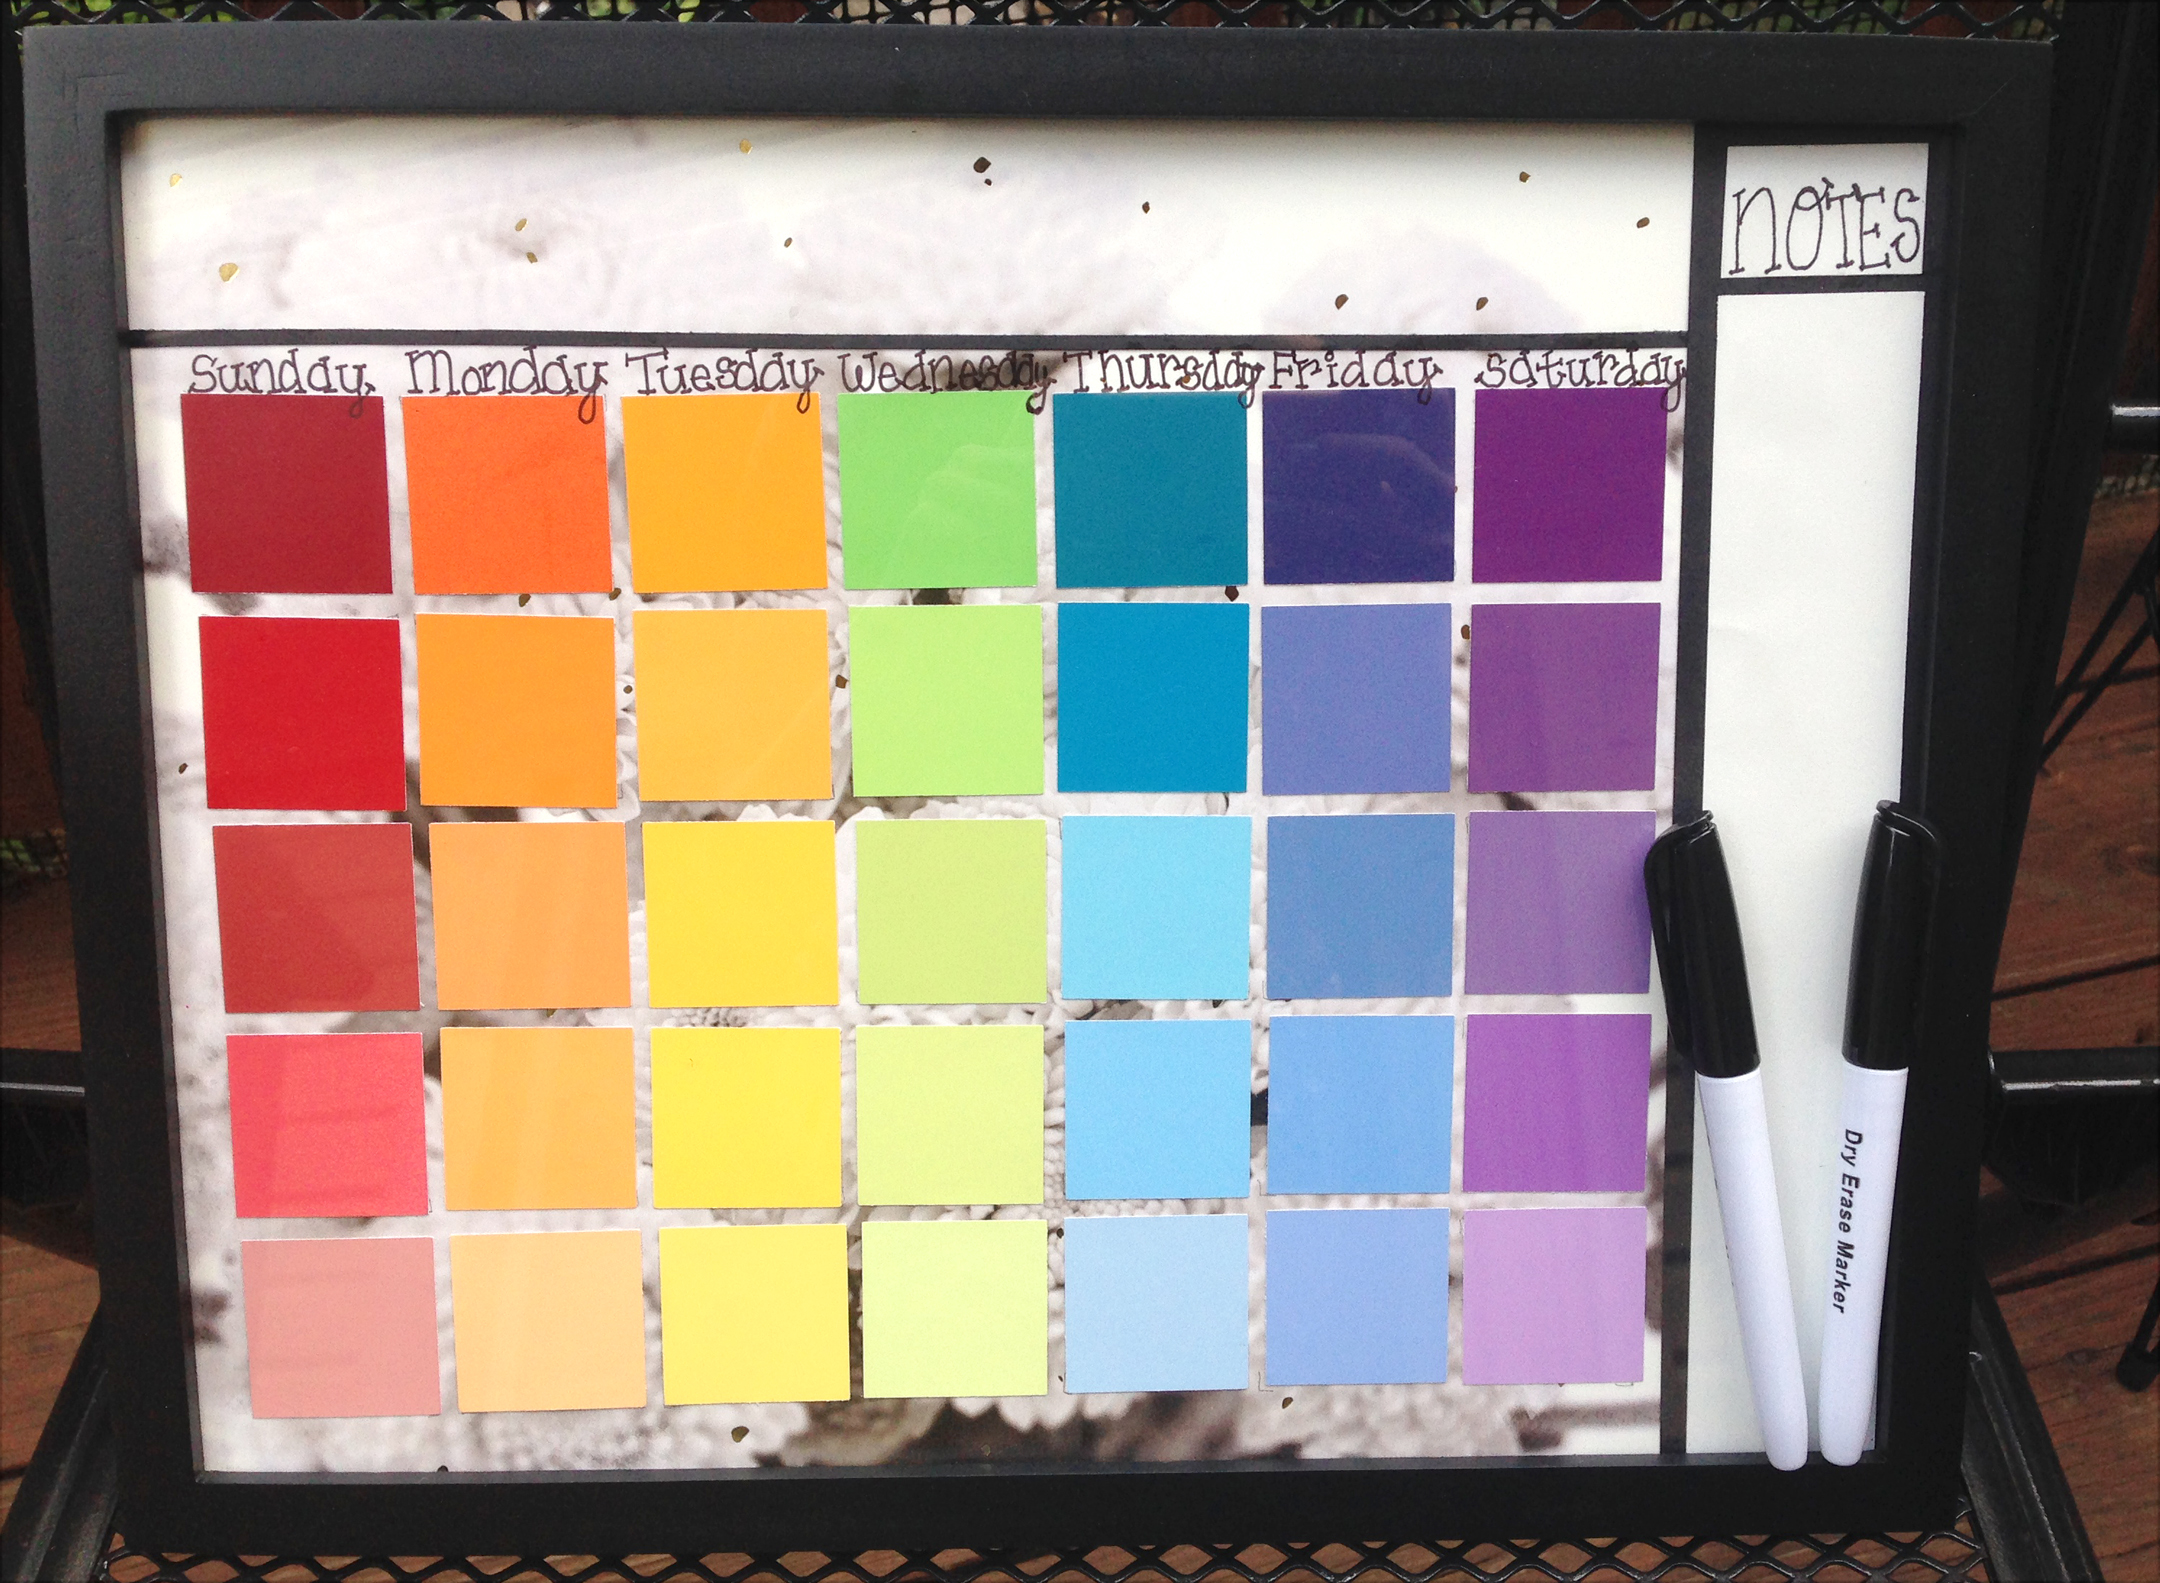 Diy Calendar Ideas : Diy dry erase calendar with paint samples